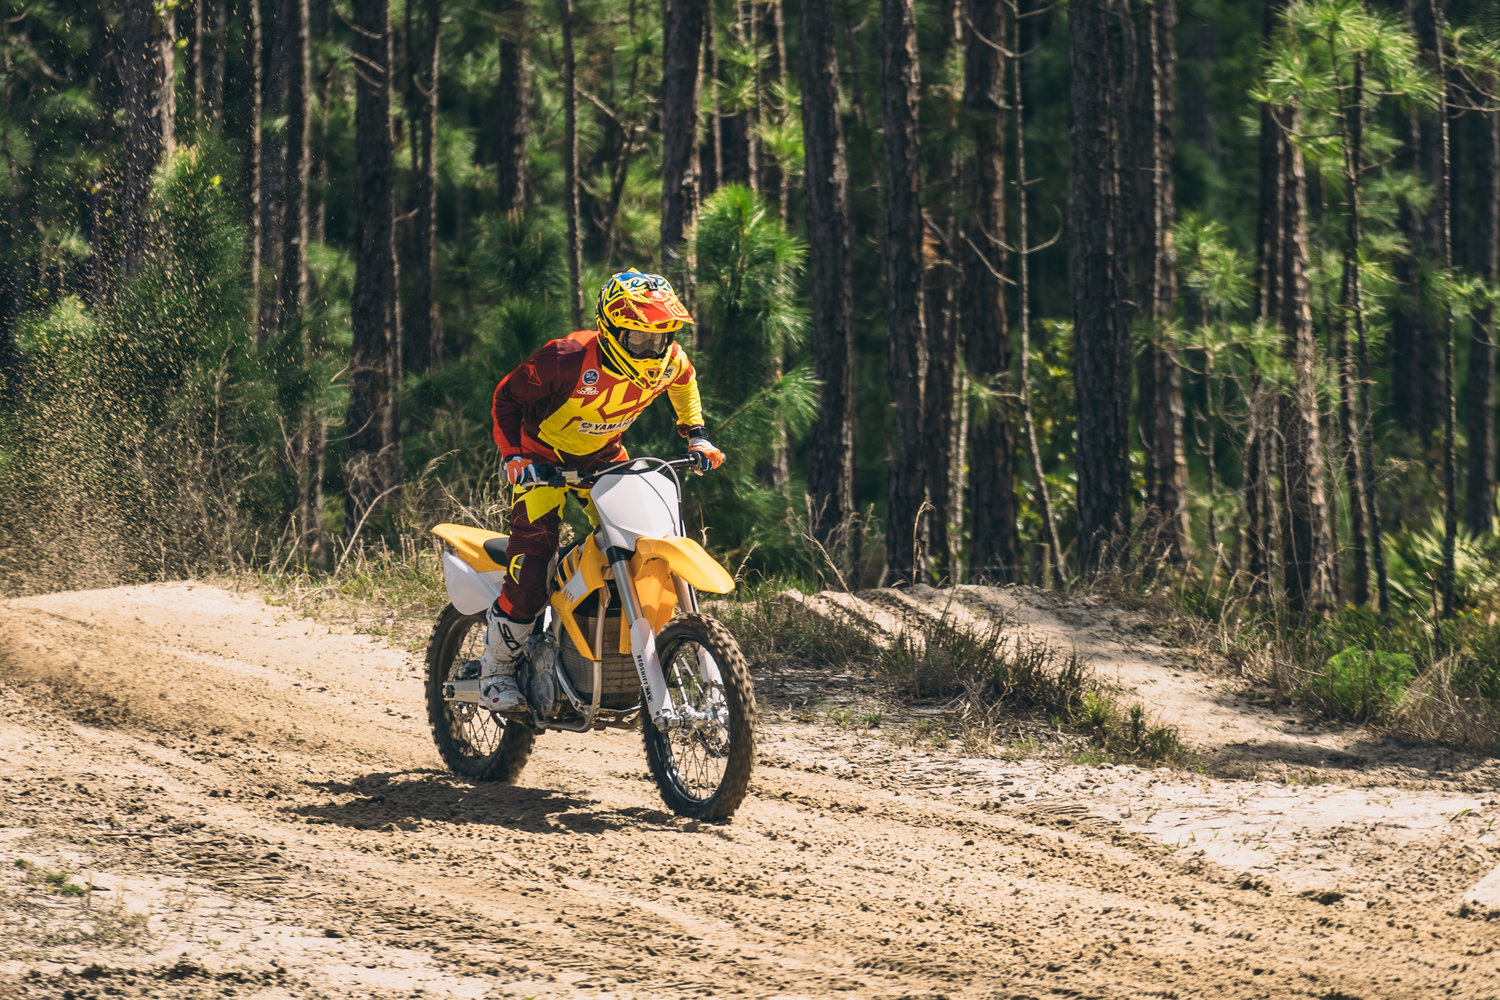 Trail Blazers: These 3 New Electric Dirt Bikes are Game-Changers